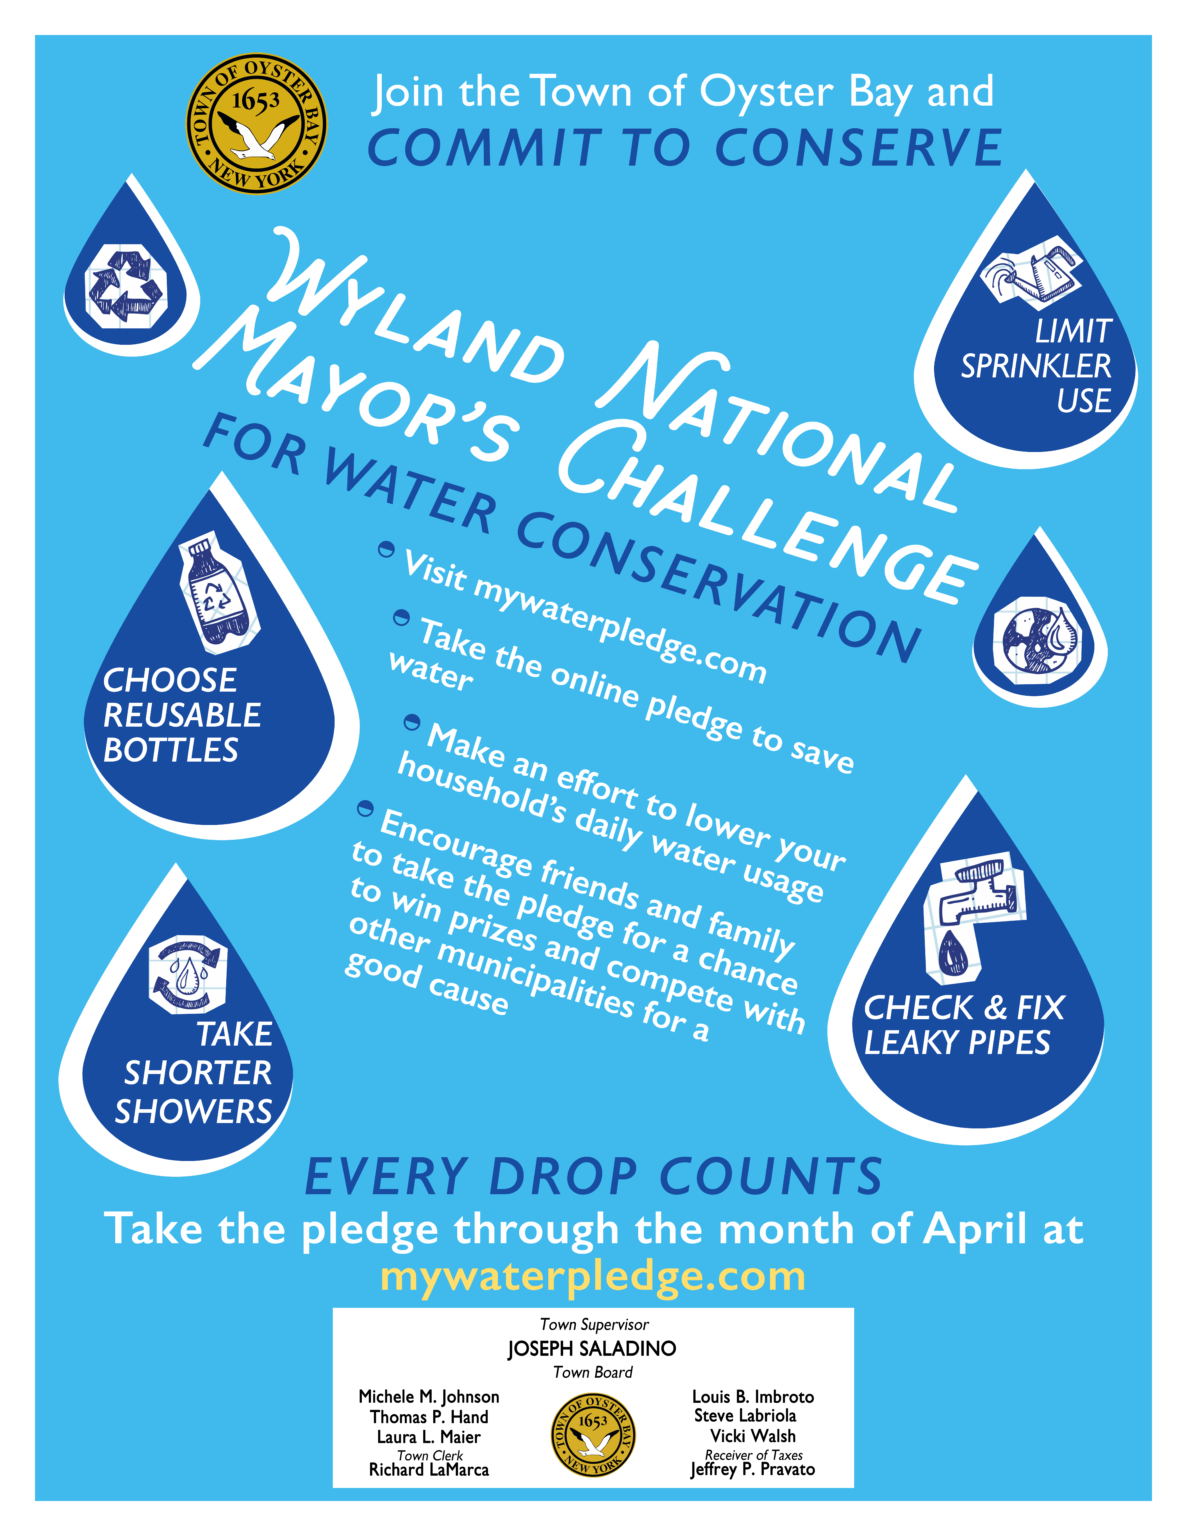 Town Invites Residents To 'Commit To Conserve' In Wyland Within Town Of Oyster Bay 2021 Town Calendar